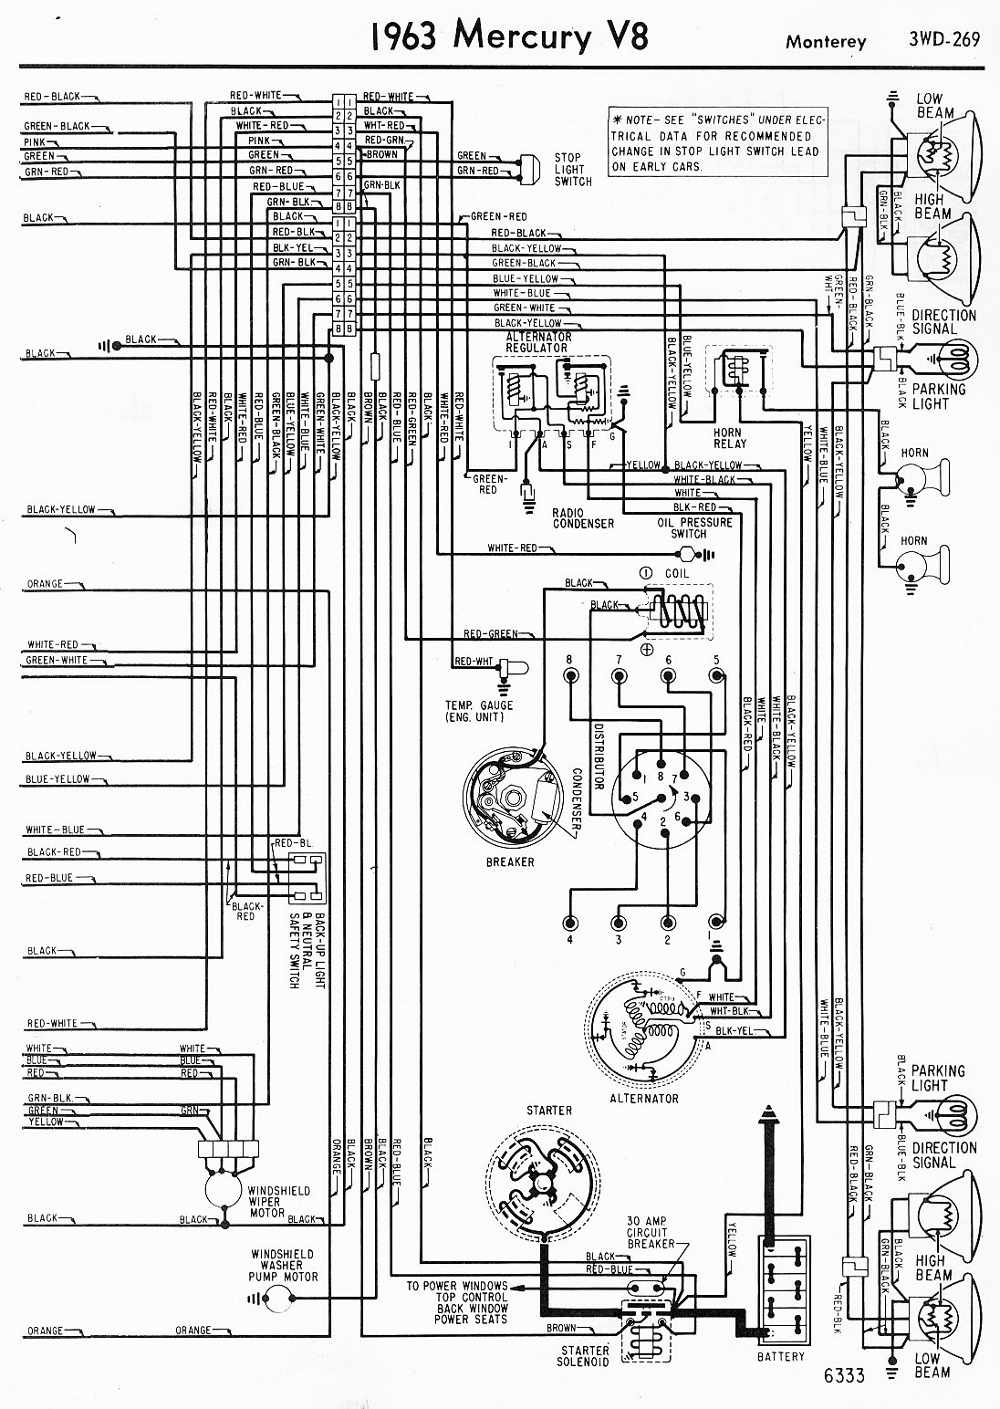 1948 Mercury Wiring Diagram Trusted Schematics For 49 Chevrolet Passenger Car Convertible Harness Lincoln Continental 2003 Marquis